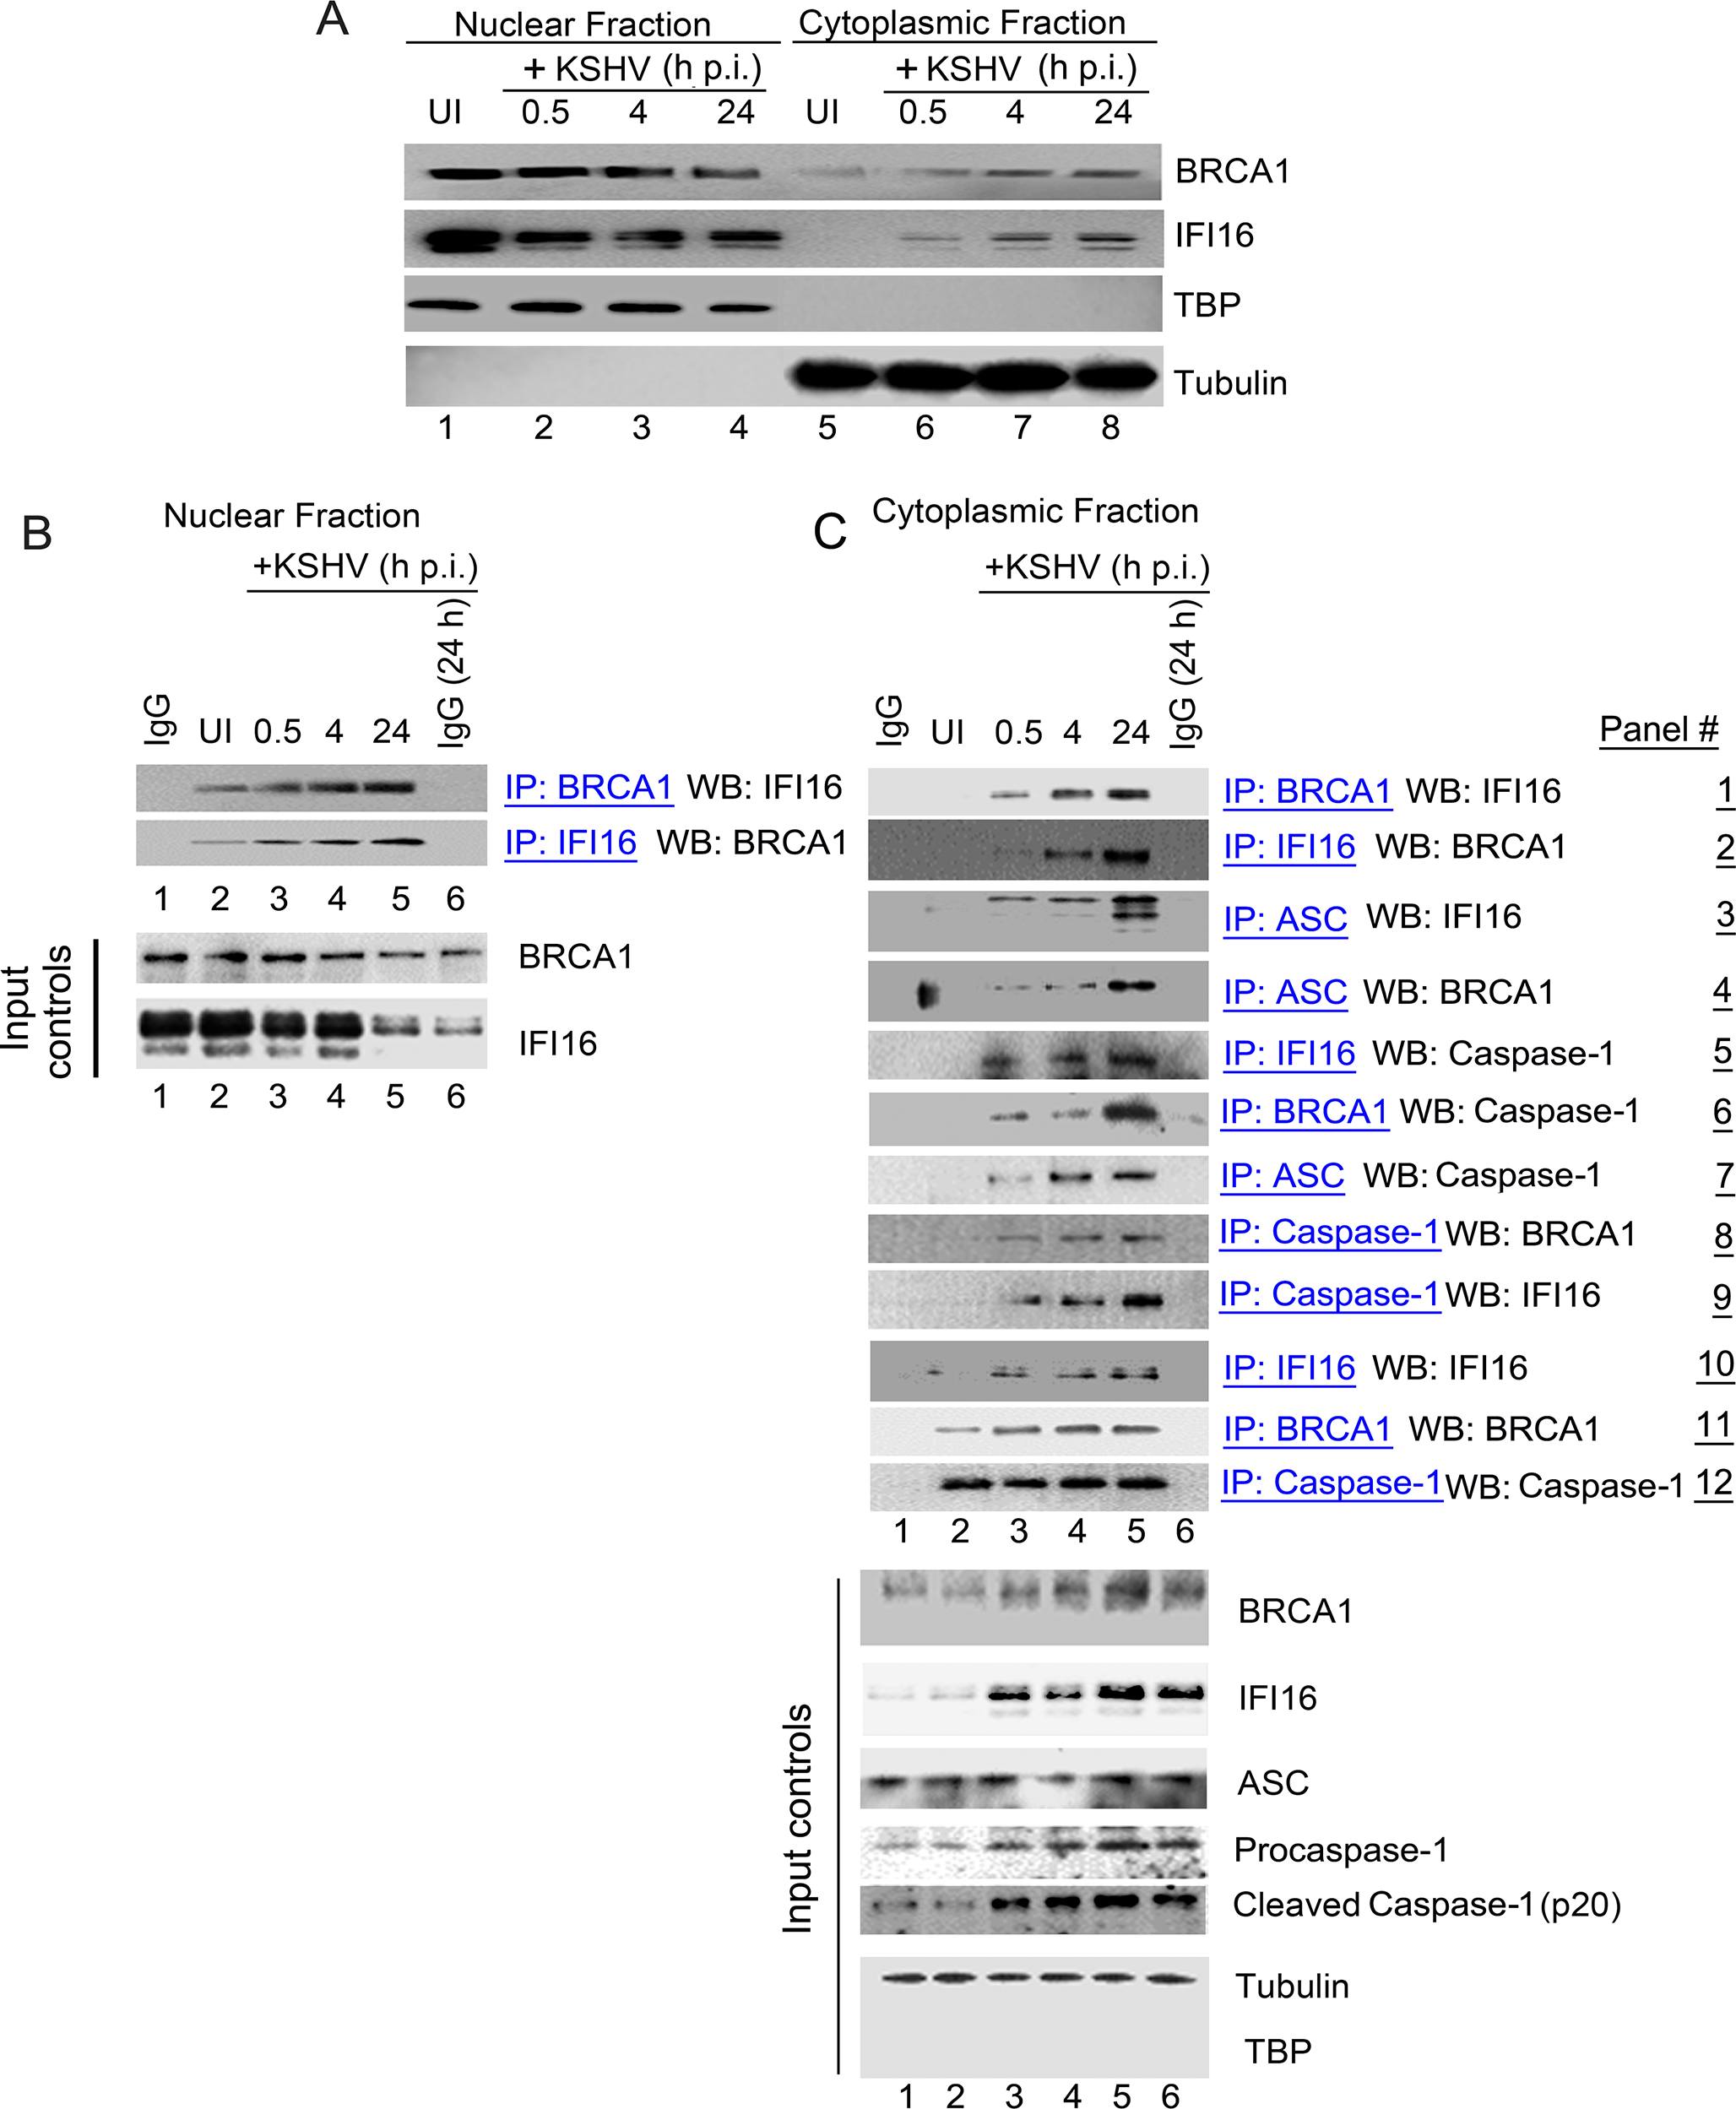 Cytoplasmic distribution of BRCA1 and IFI16 during <i>de novo</i> KSHV infection and BRCA1 is part of the IFI16 inflammasome complex.